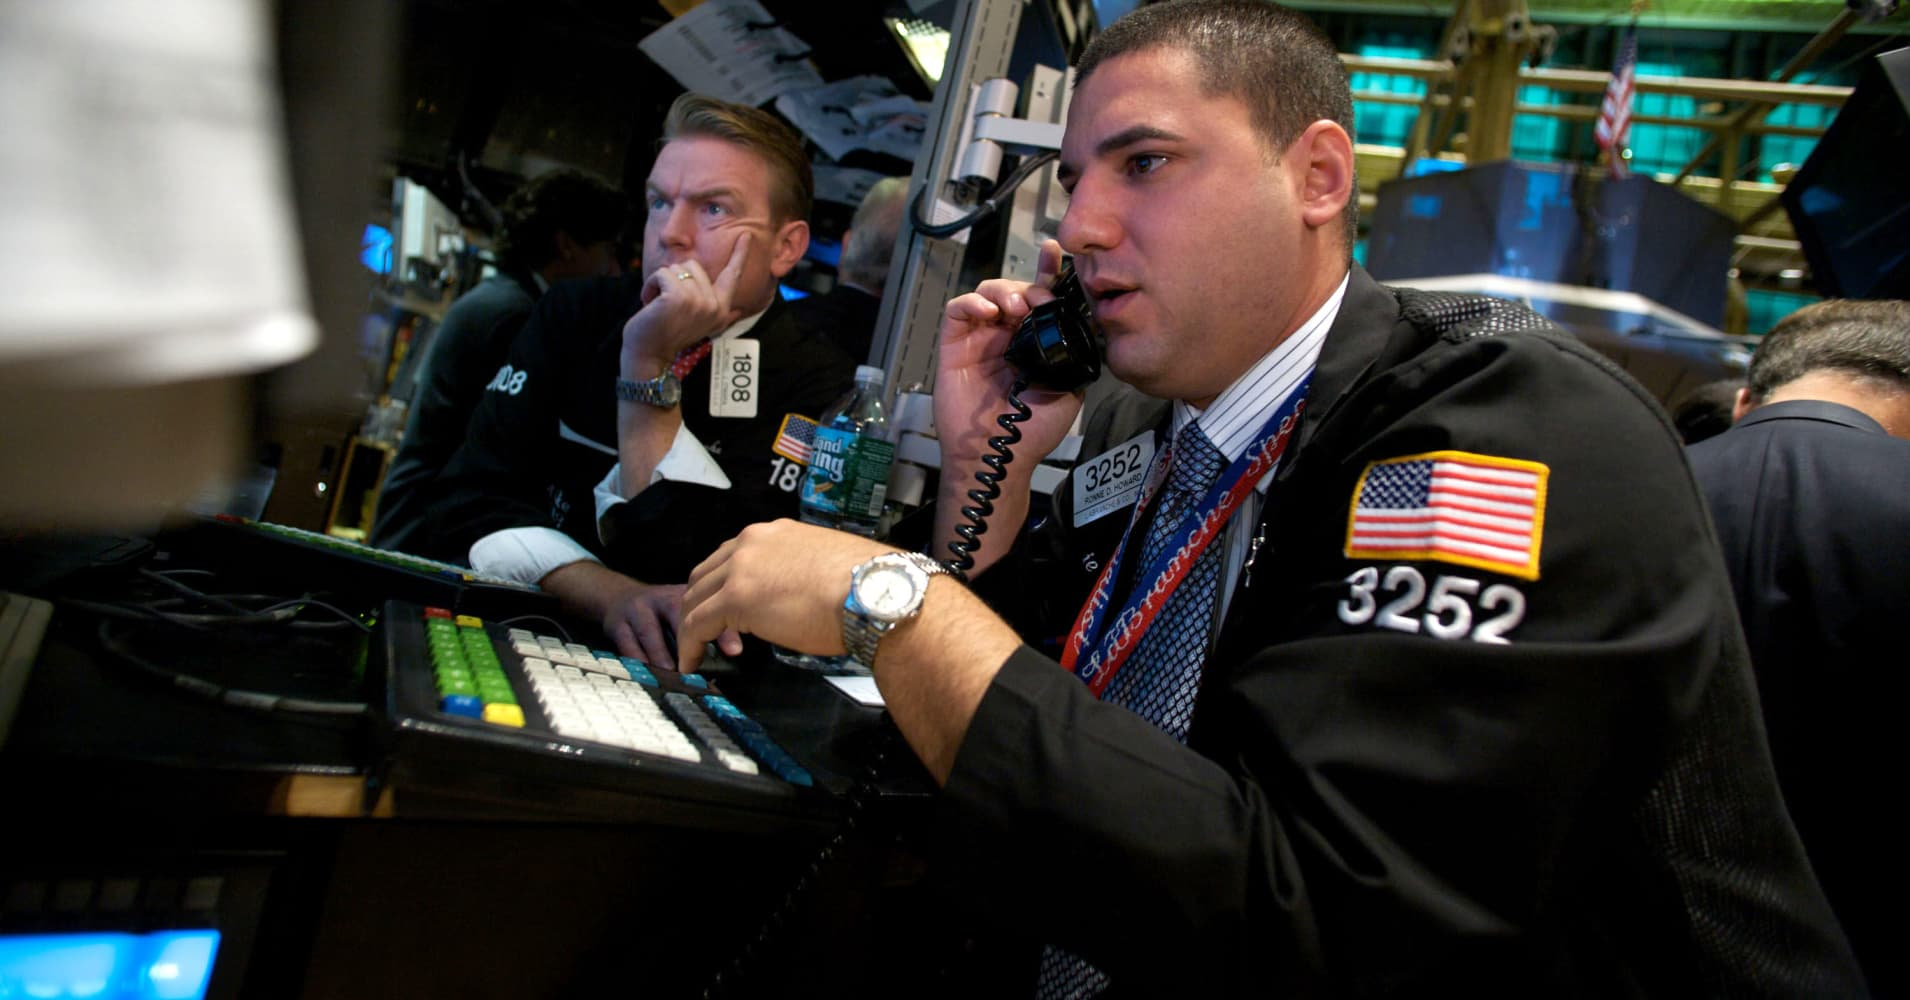 Sell stocks as another correction is coming, strategist warns